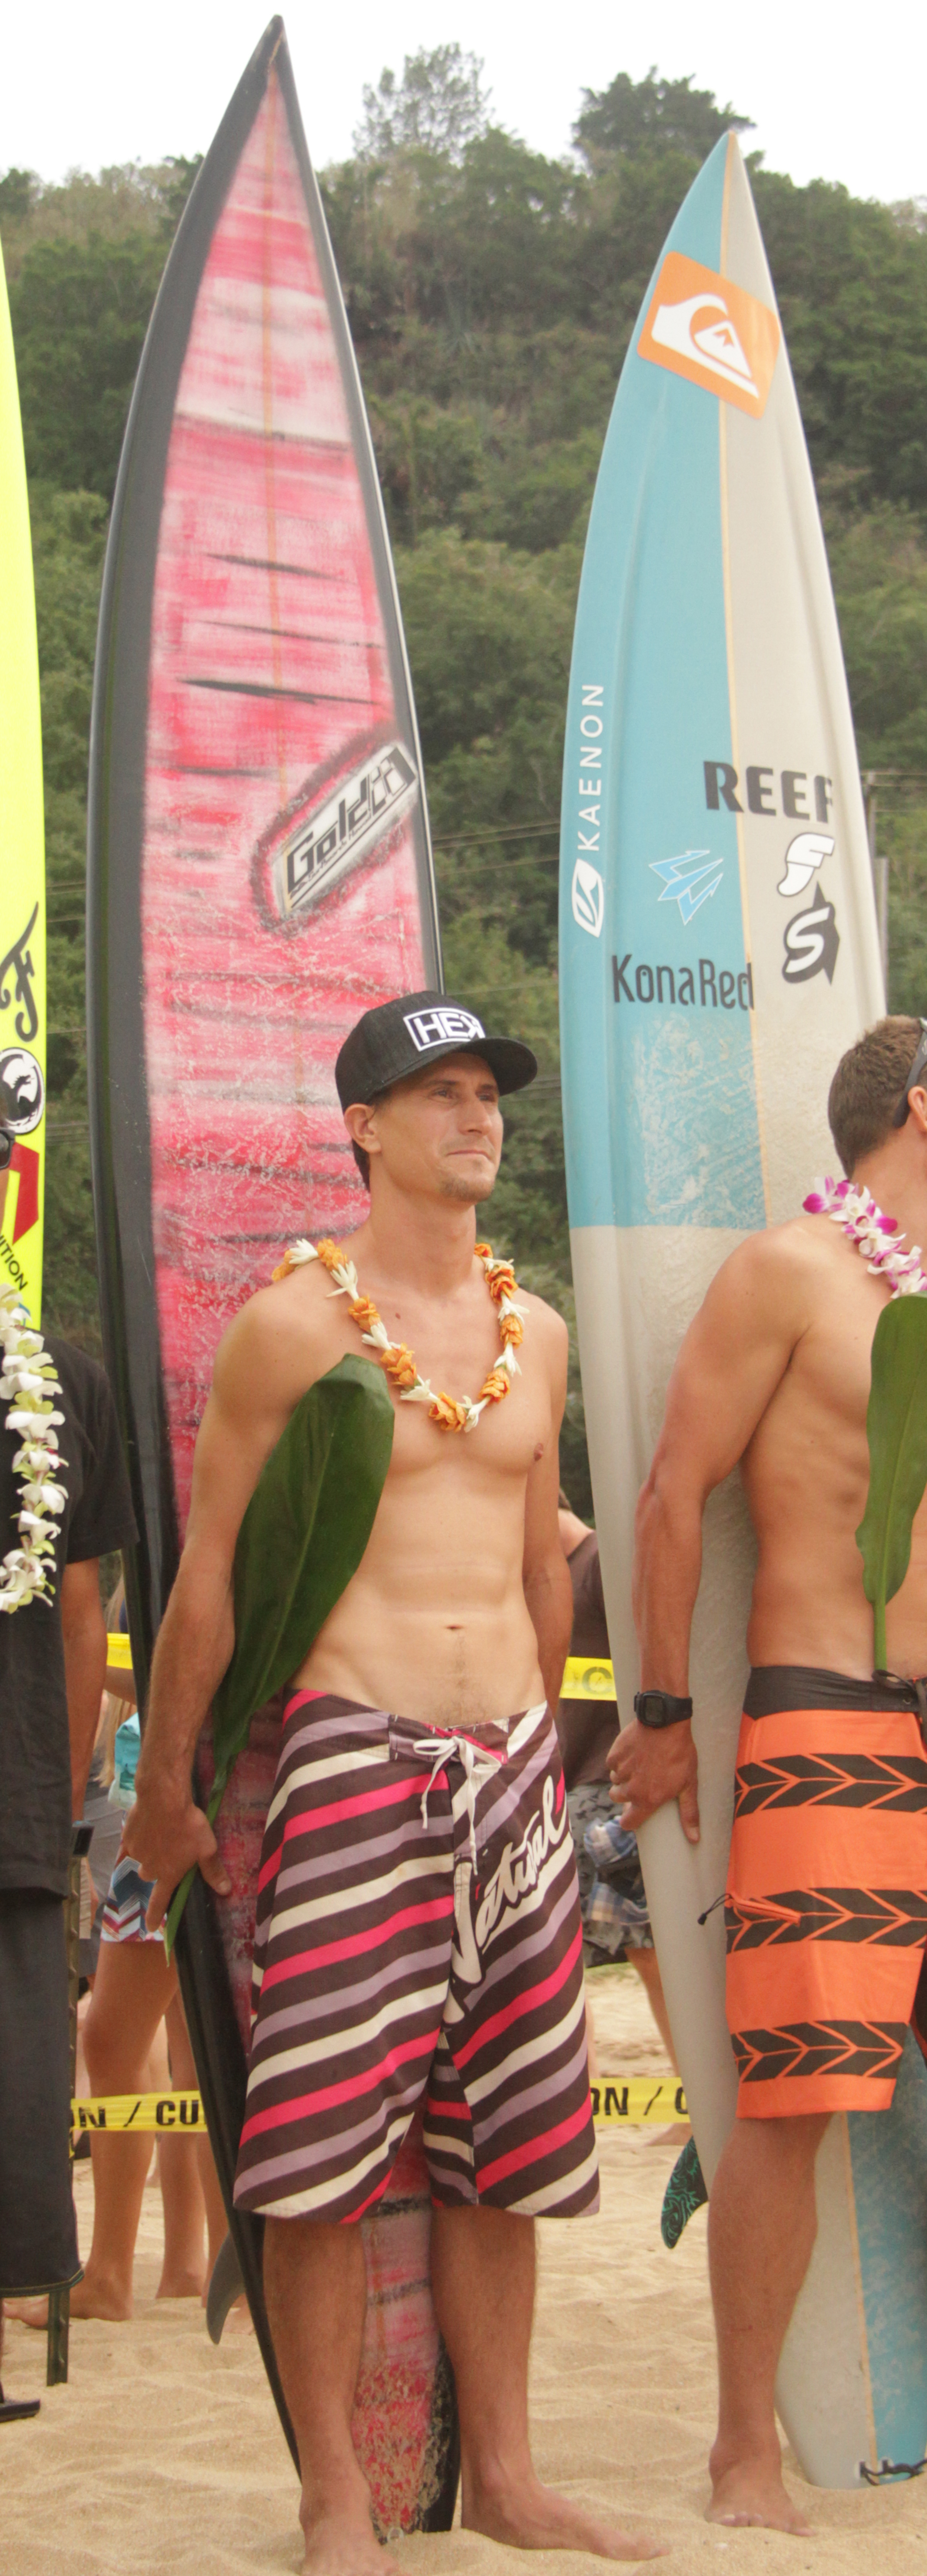 Aaron Gold's at the Eddie Aikau opening ceremony